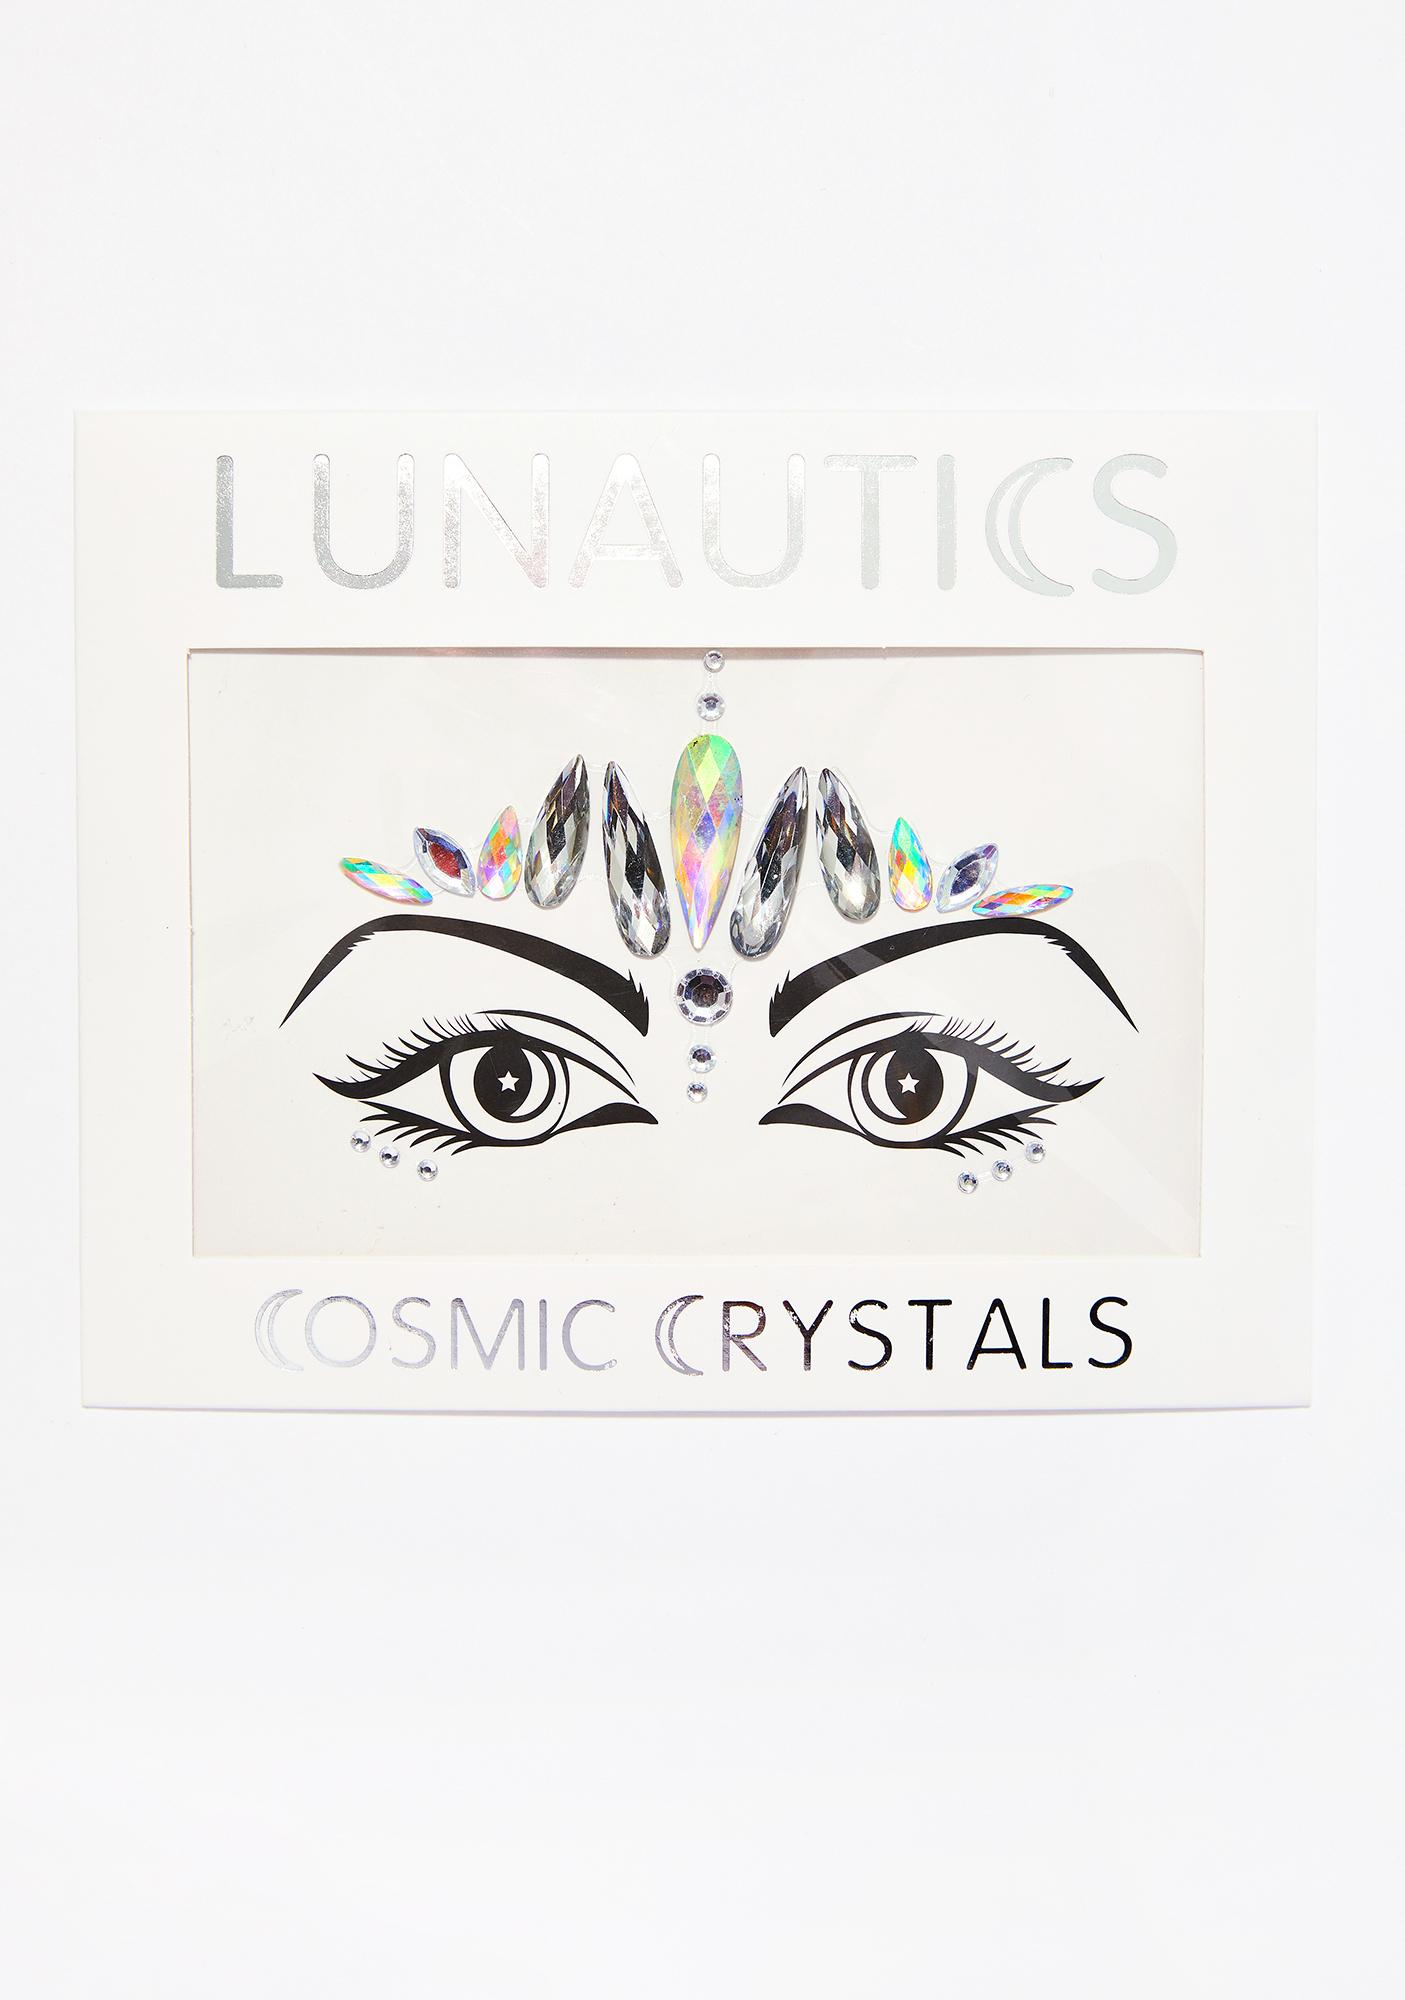 Lunautics Princess Cosmic Face Crystals